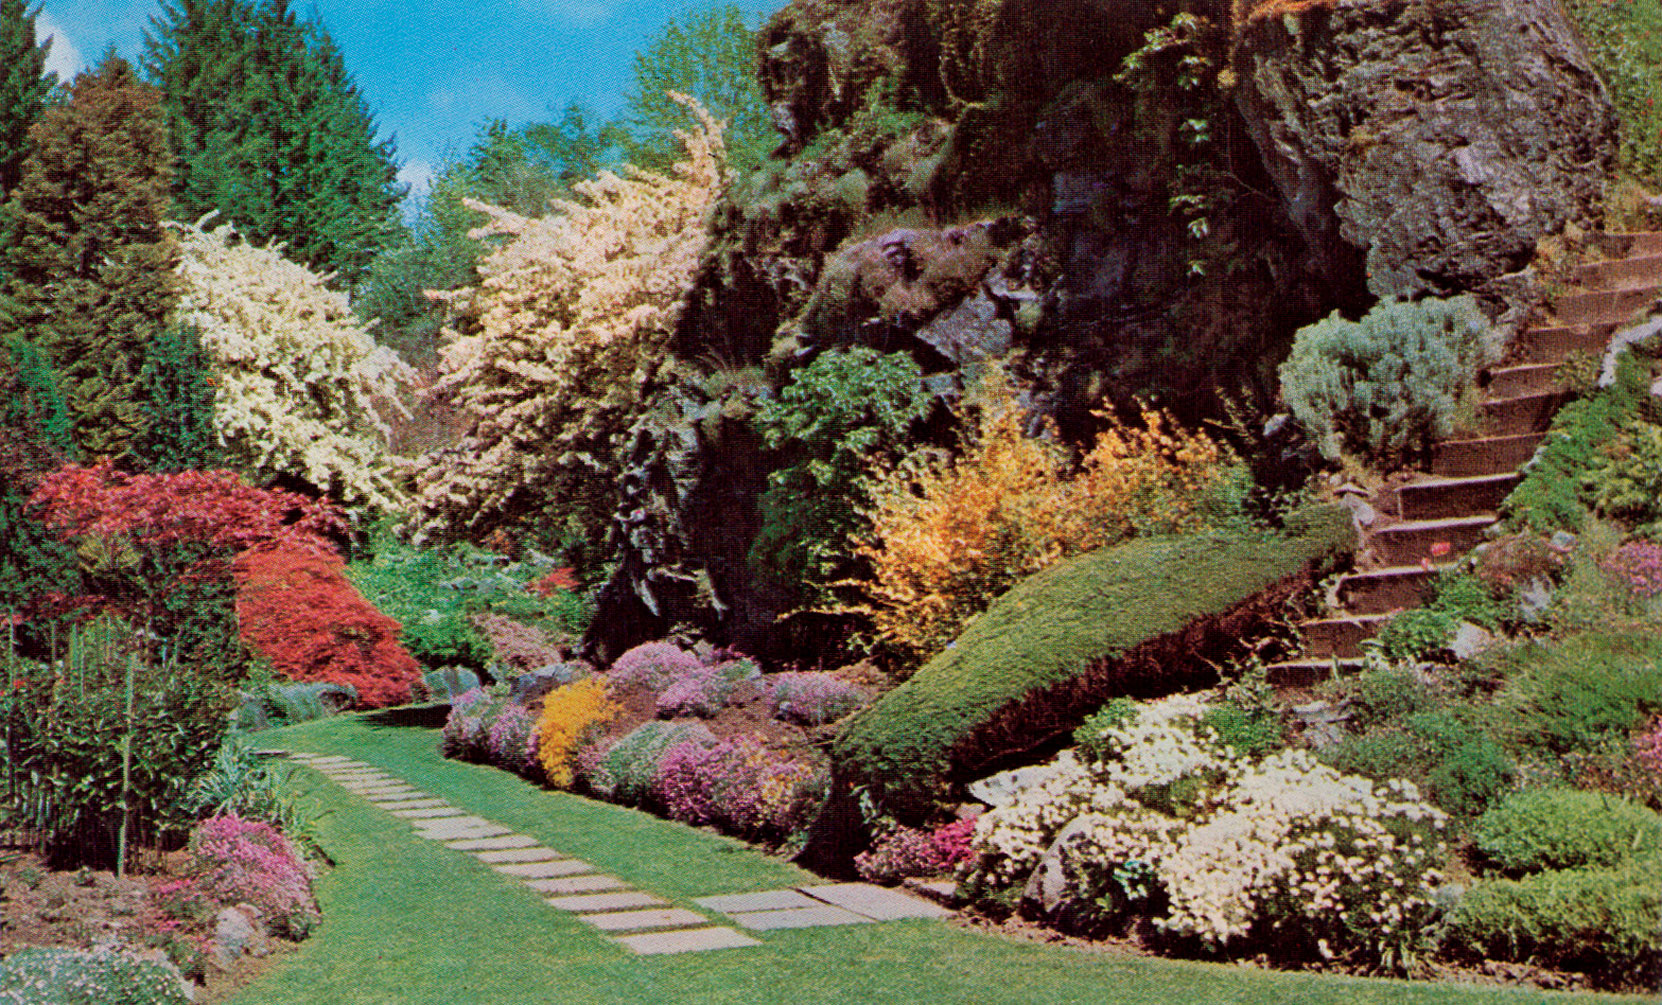 Postcard showing the Sunken Garden Mound, circa 1960's. (Author's collection)